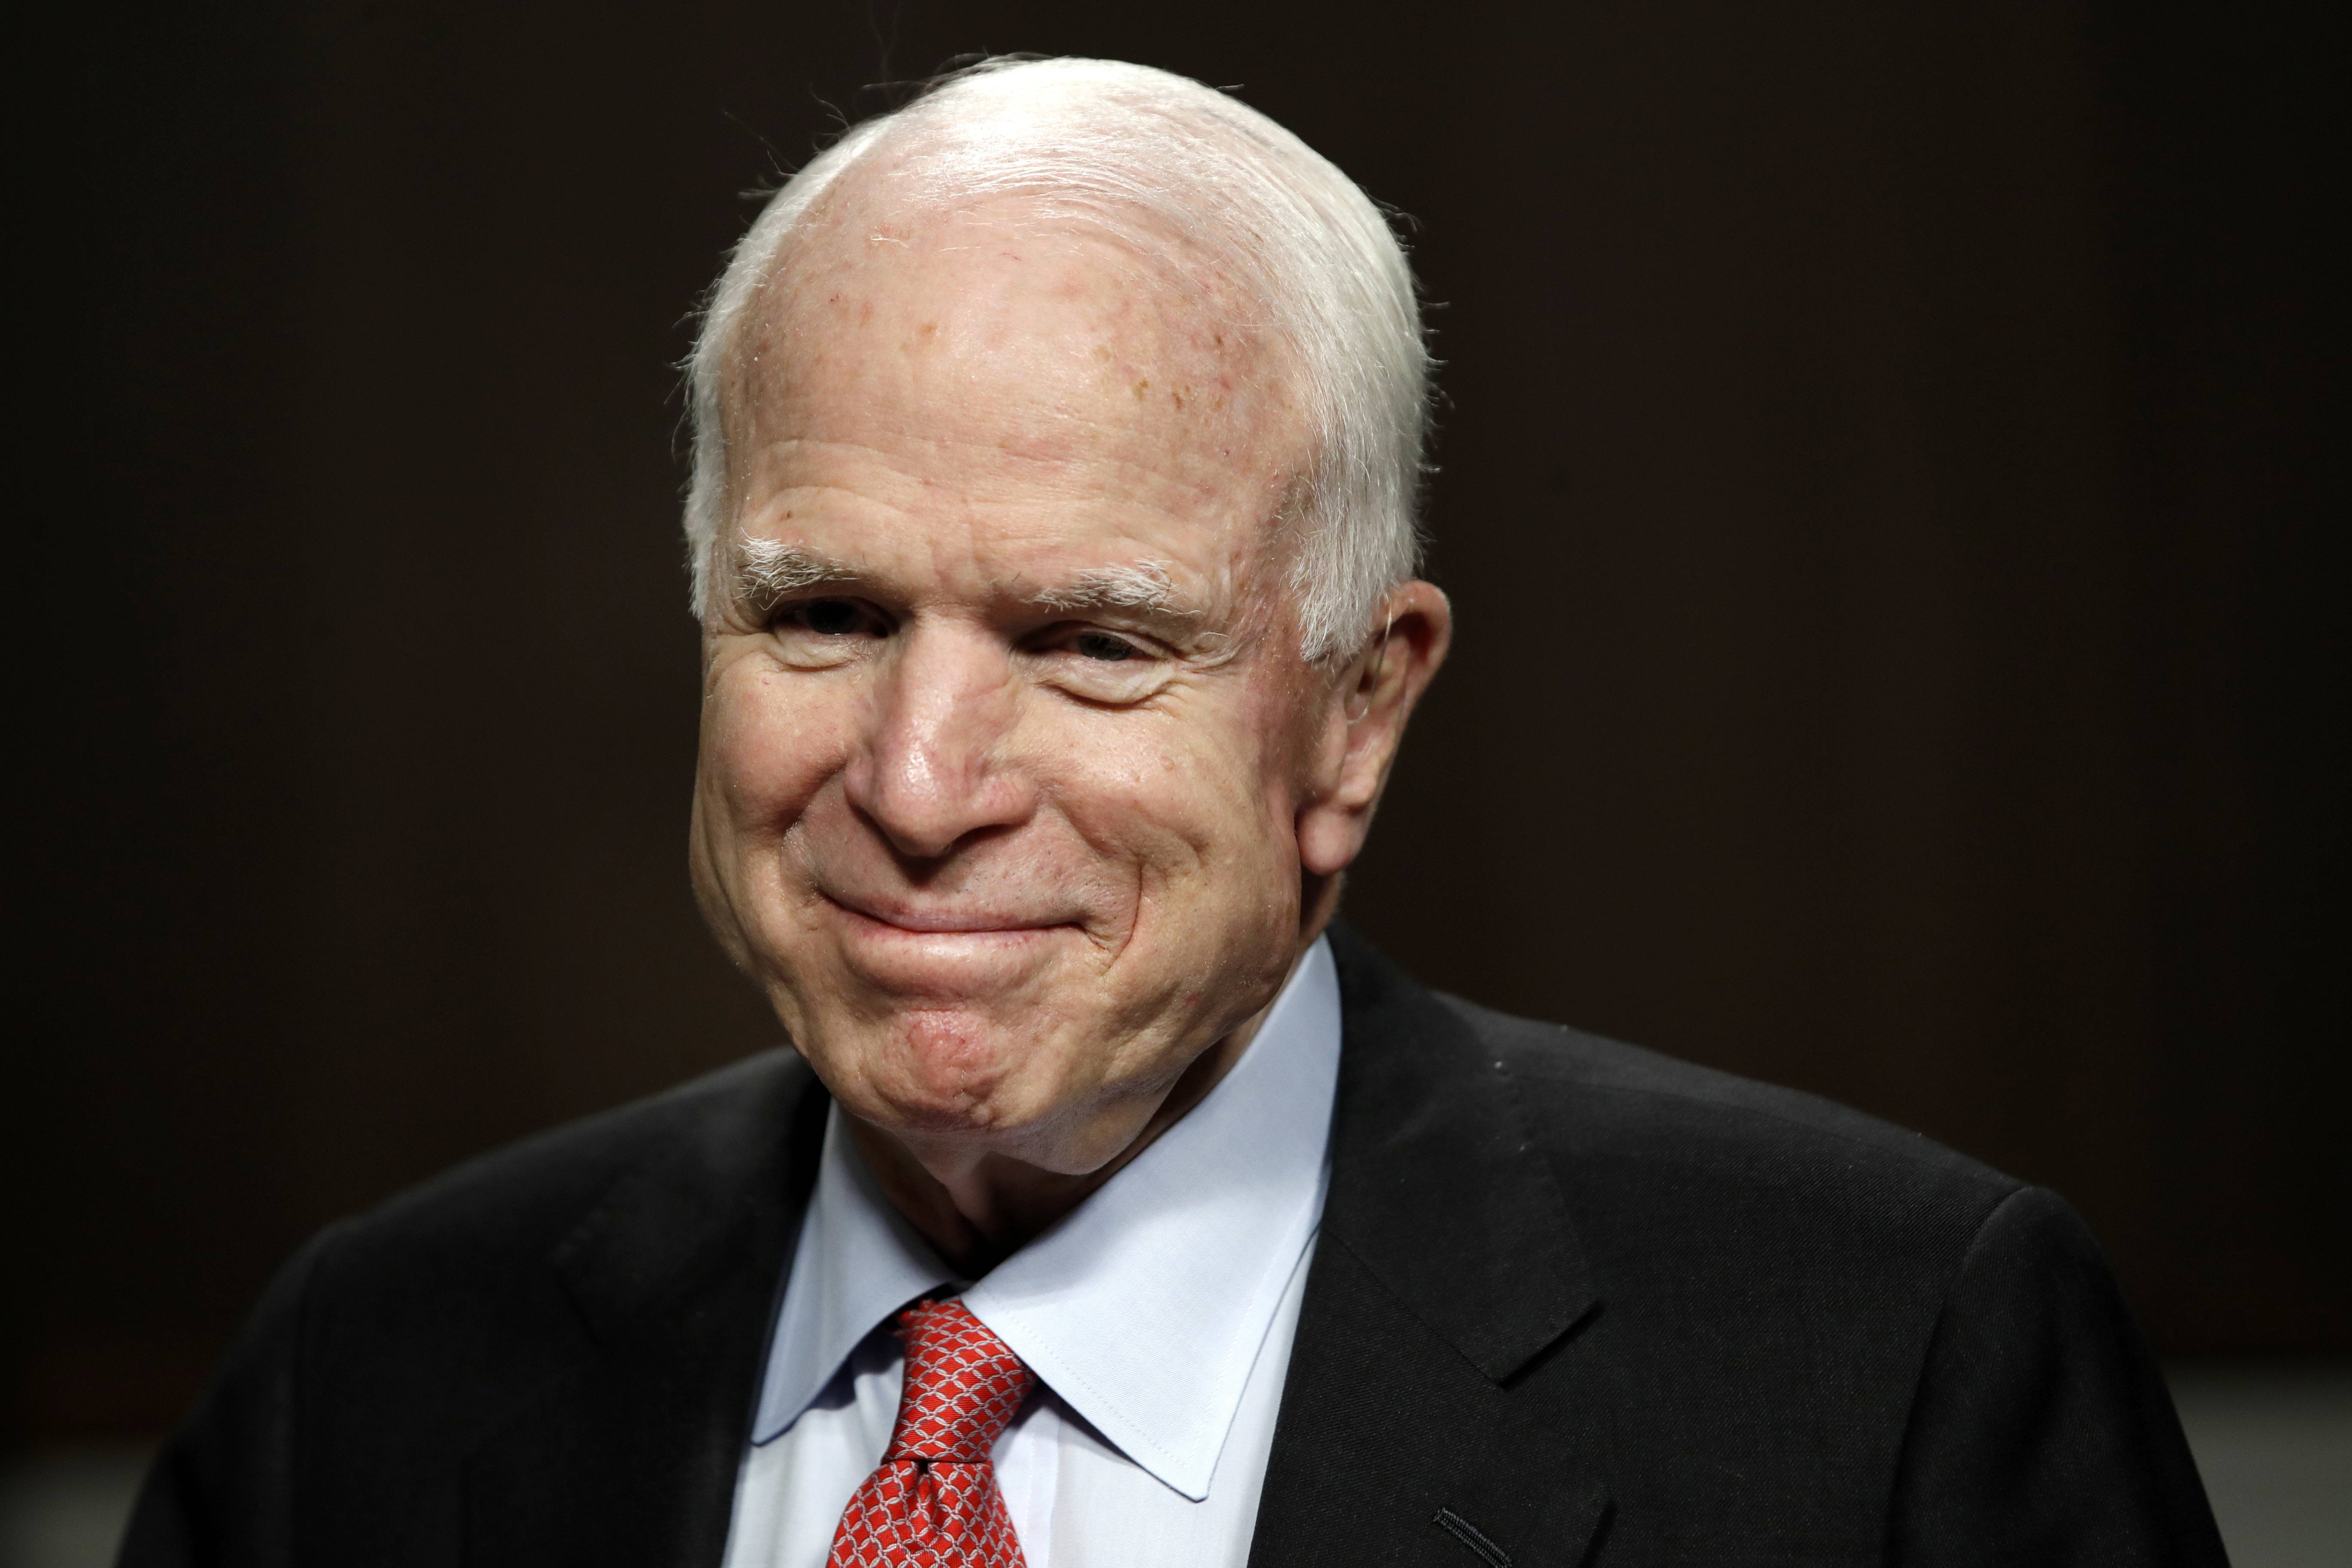 Sen. John McCain, an Arizona Republican, has been diagnosed with a brain tumor after a blood clot was removed.